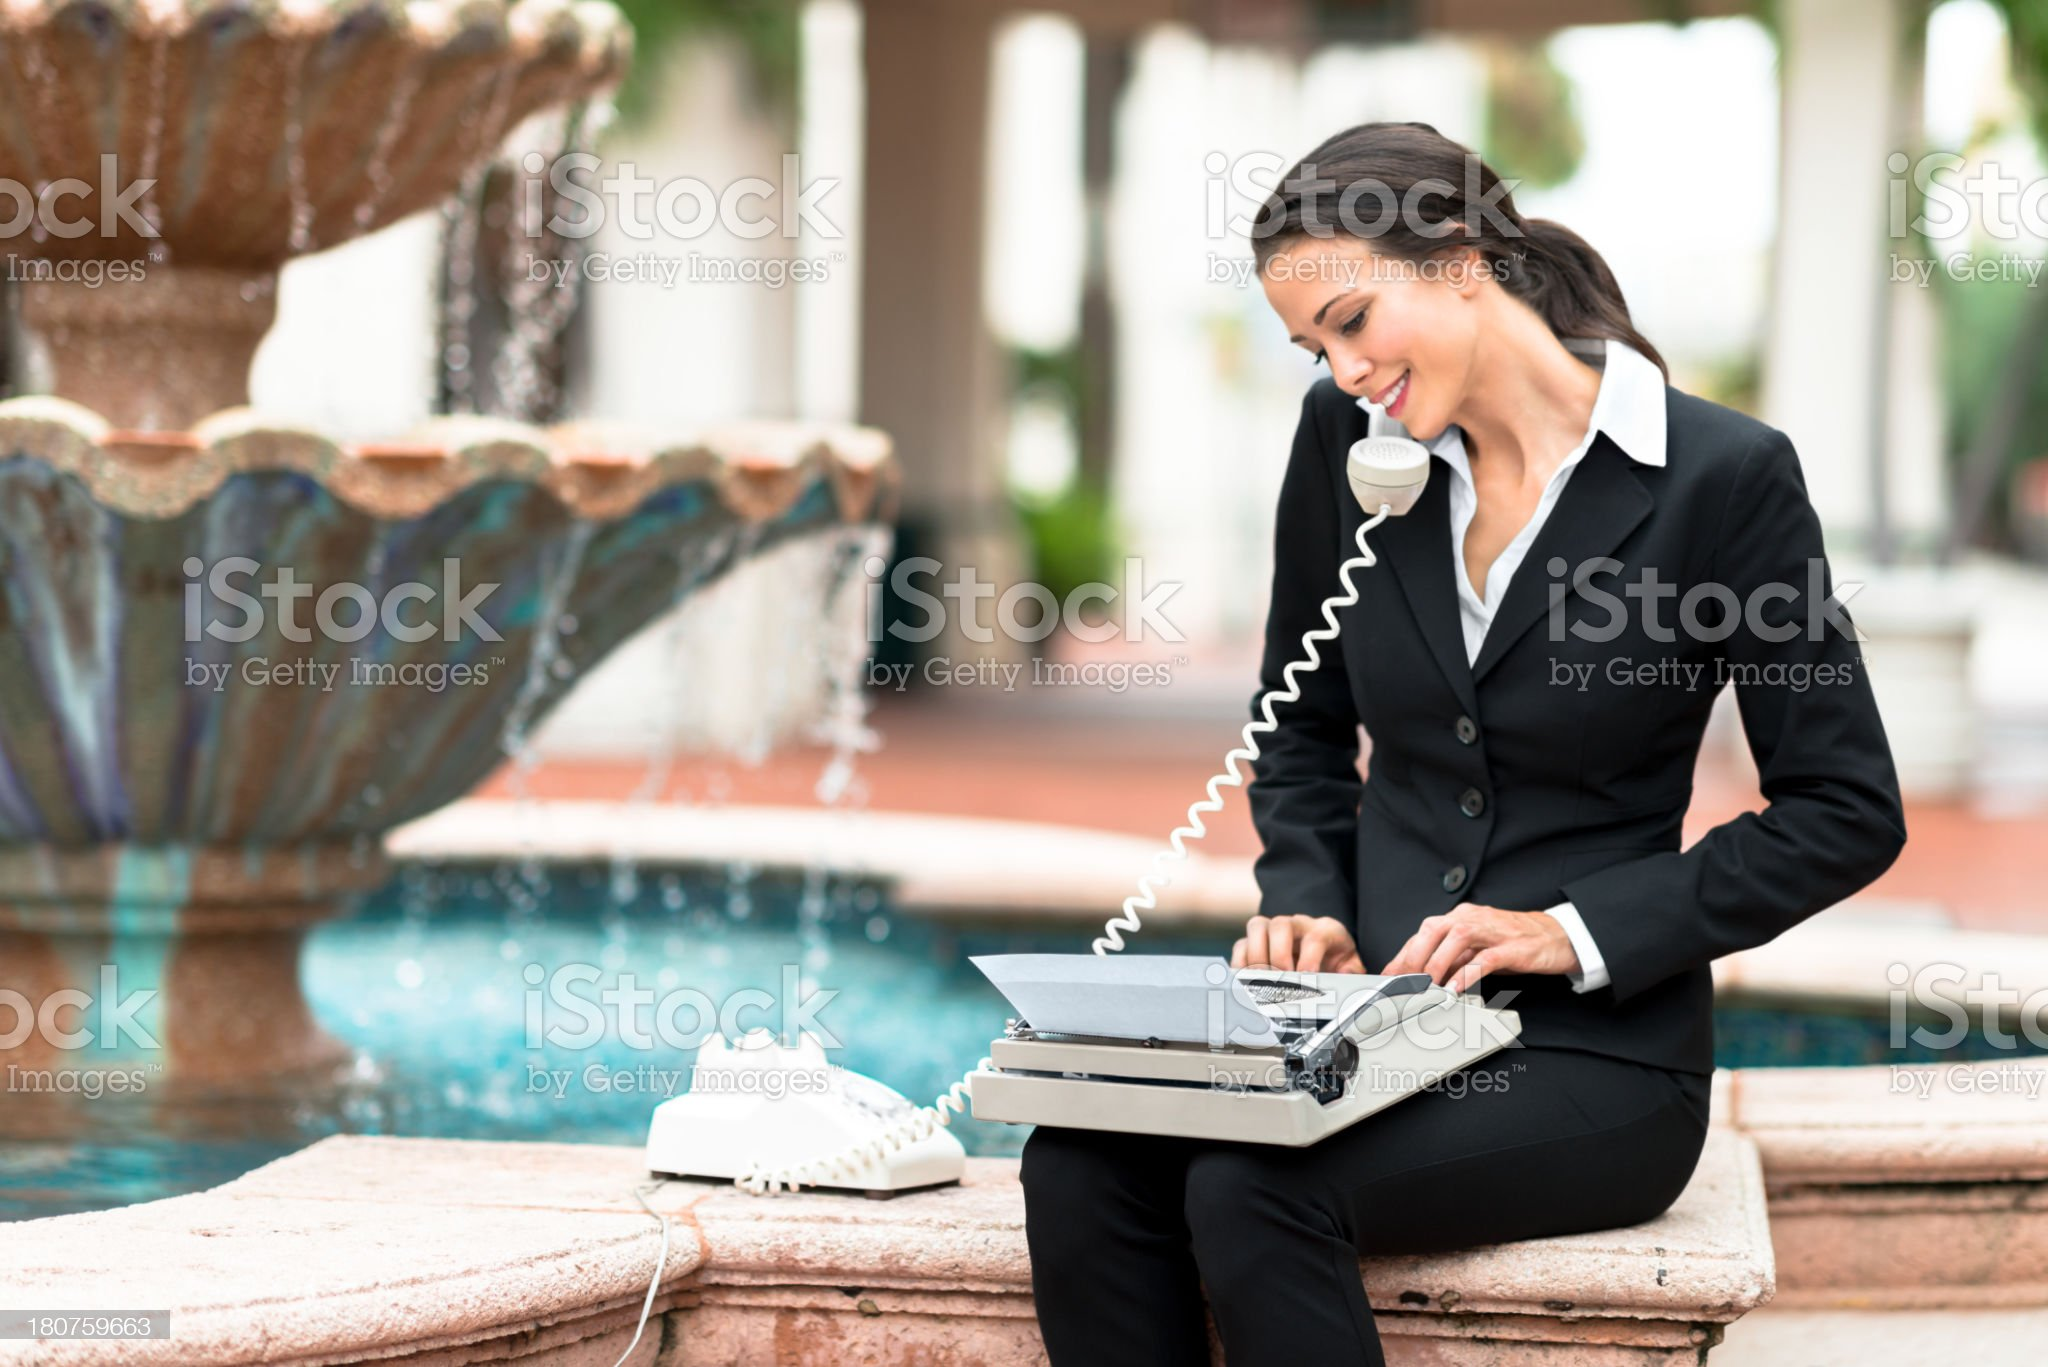 Businesswoman with Old Telephone and Typewriter royalty-free stock photo